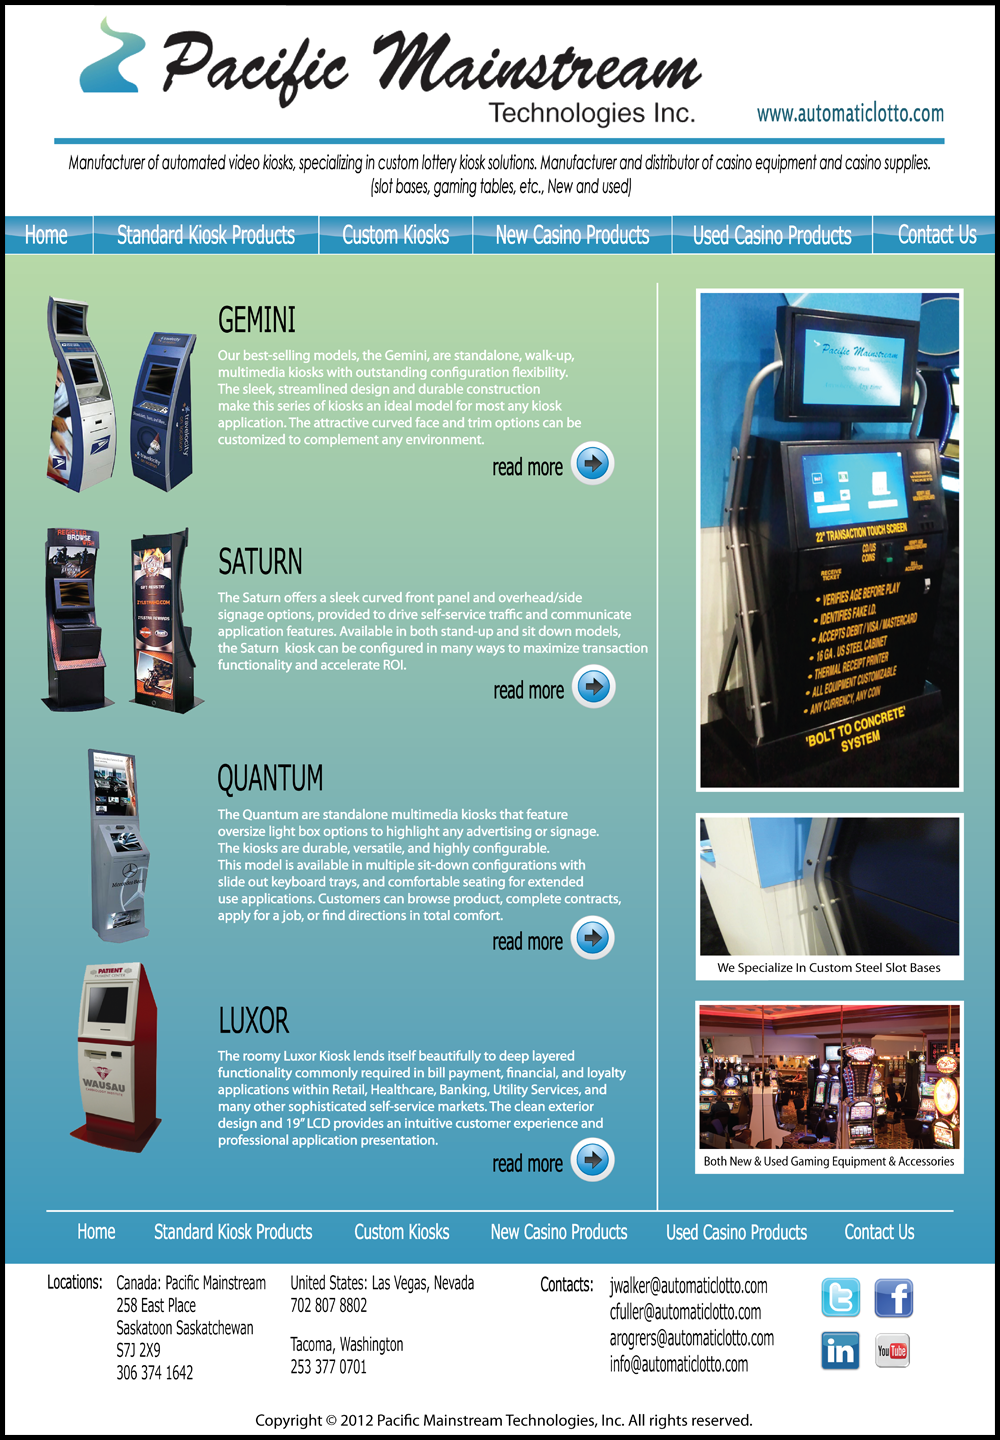 Web Page Design by Lefky - Entry No. 18 in the Web Page Design Contest Fun Web Page Design for Mainstream Pacific Technologies Inc..